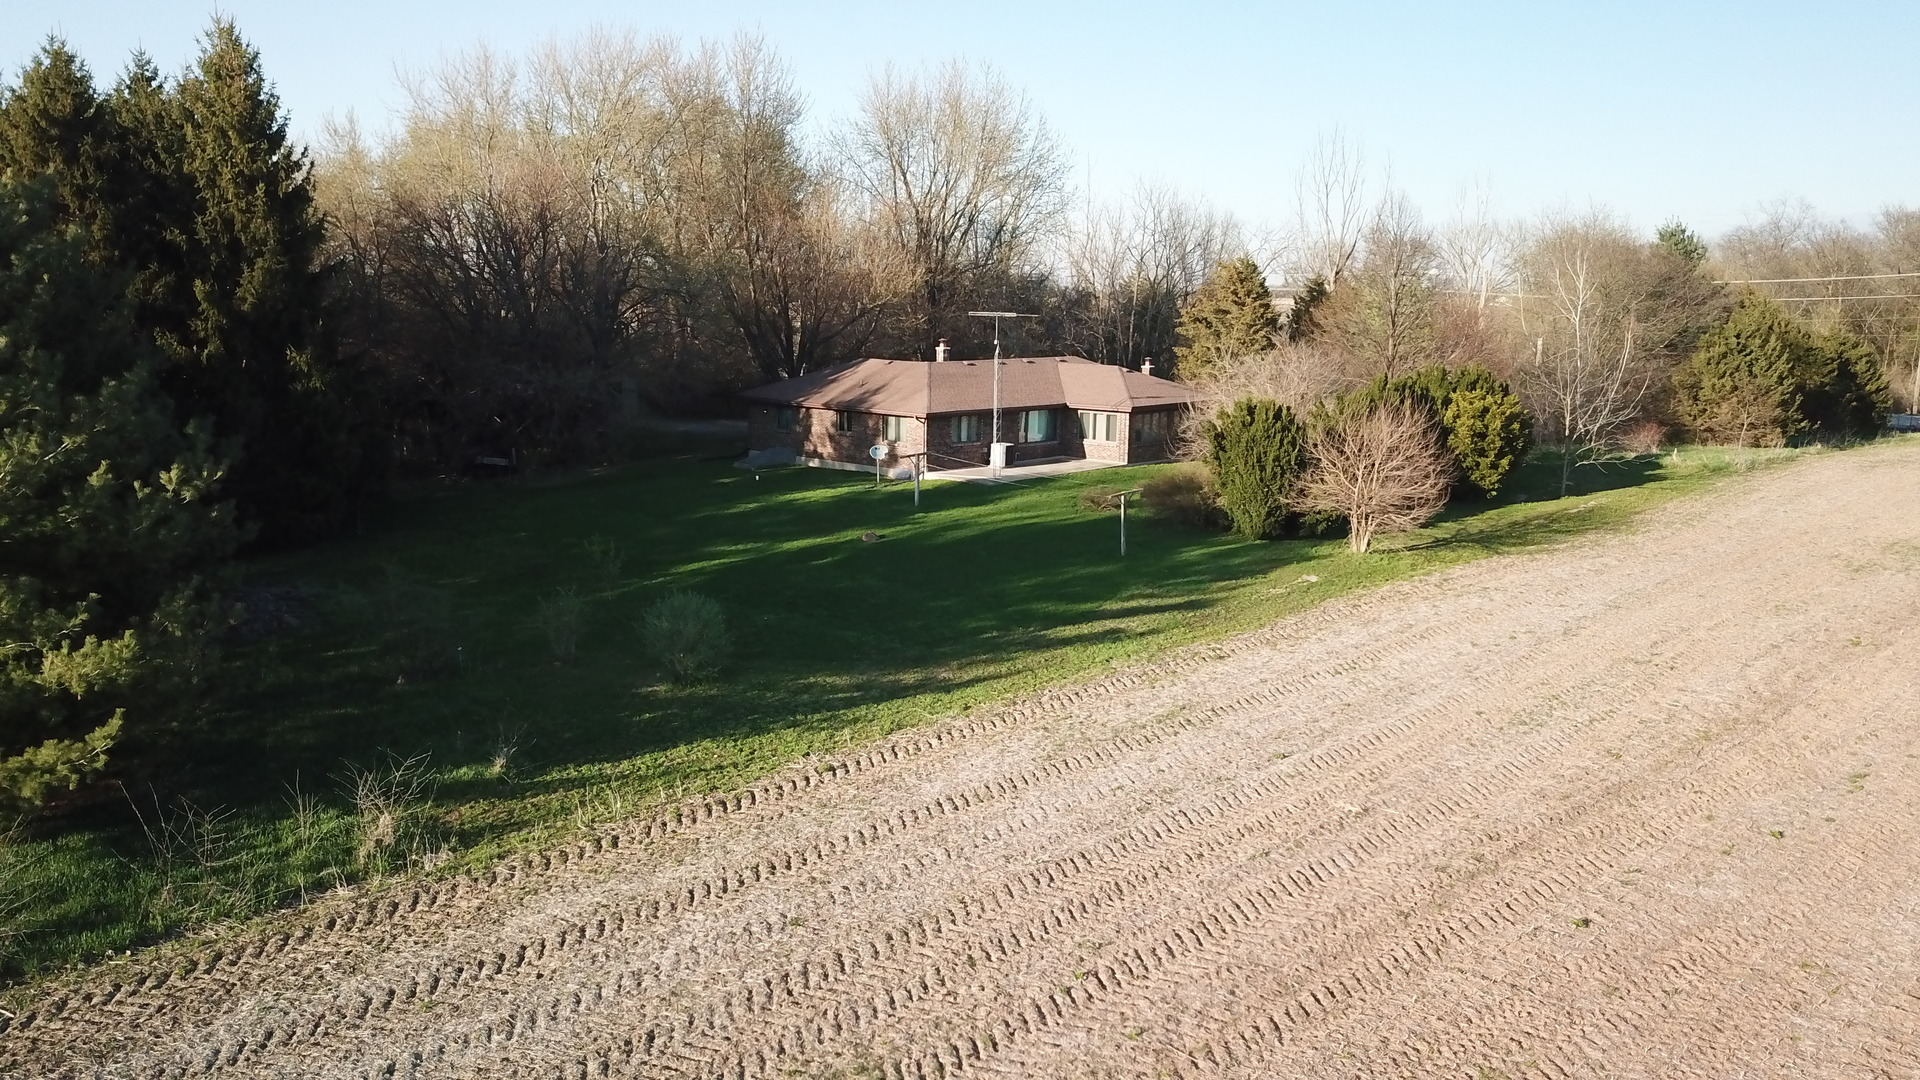 4703 Orth, Poplar Grove, Illinois, 61065